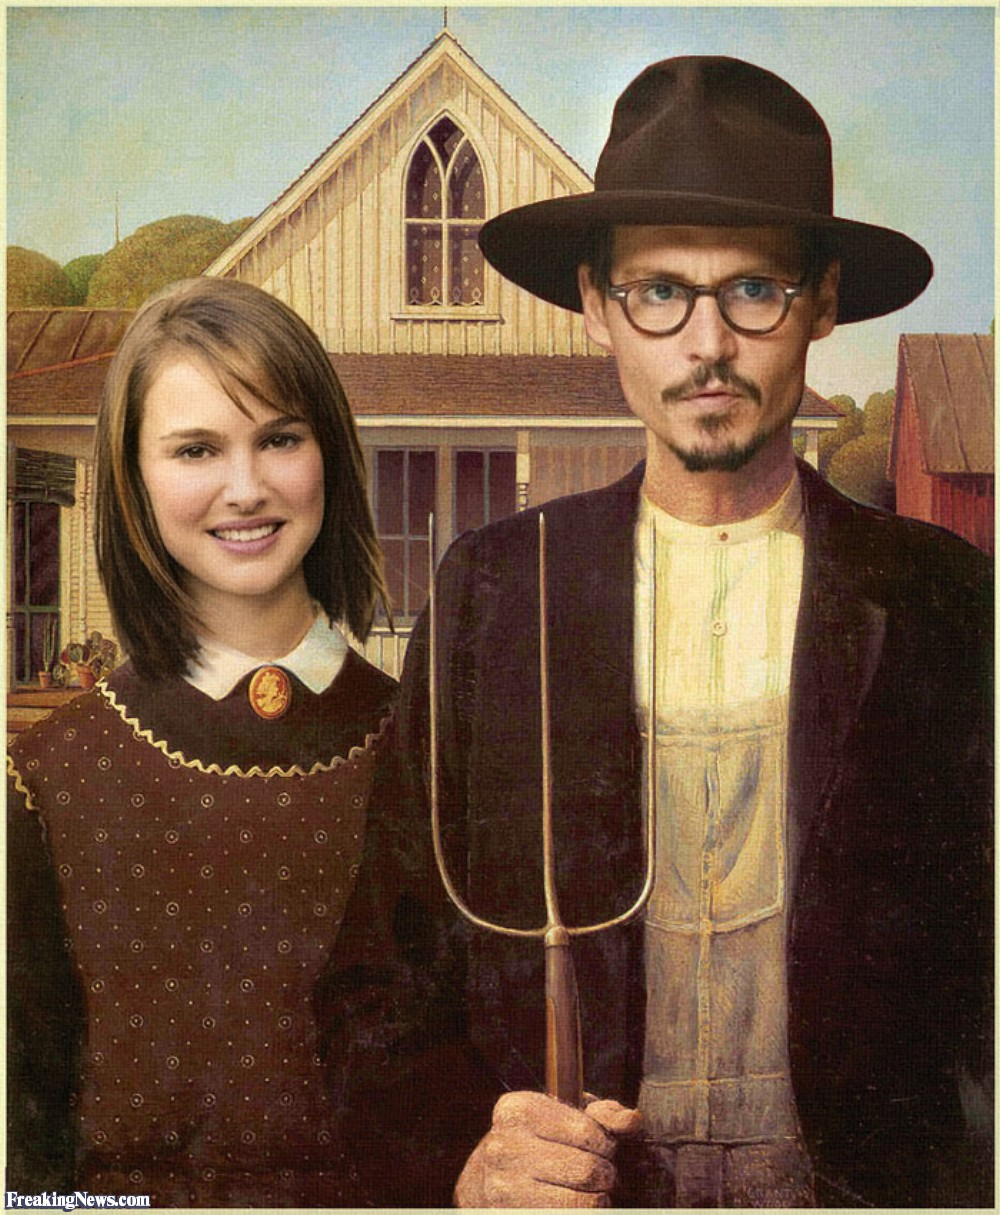 Johnny-Depp-and-Natalie-Portman-in-American-Gothic-43068